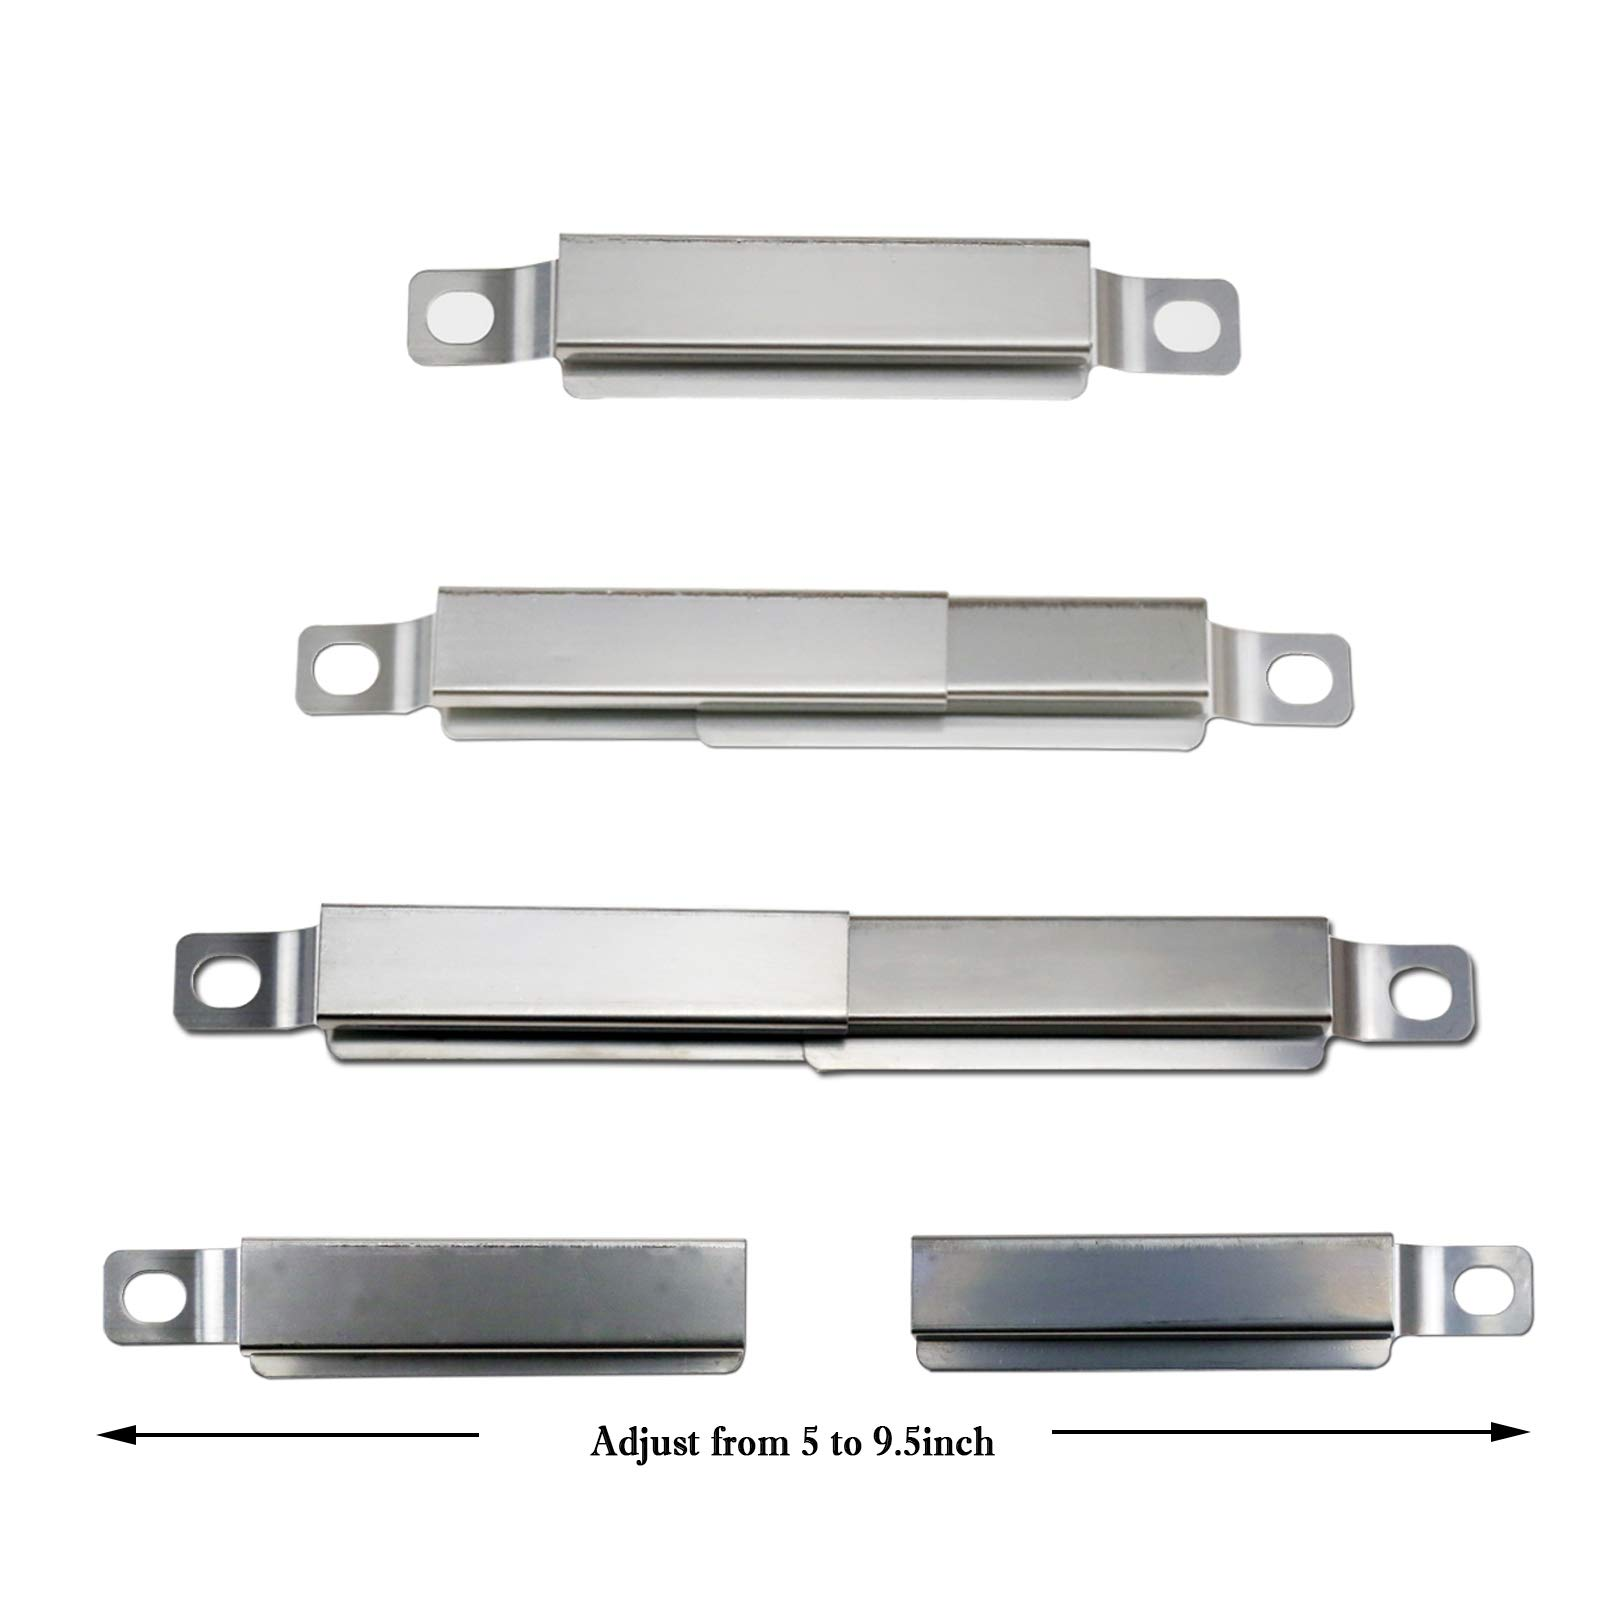 Hisencn BBQ Stainless Burner Tube, Heat Plates Tent Shield, Burner Cover, Adjust Crossover Tube Replacement for BBQ-pro 146.2367631, Kenmore 146.10016510, 146.16198211, 146.16197210 Gas Grill Models by Hisencn (Image #8)